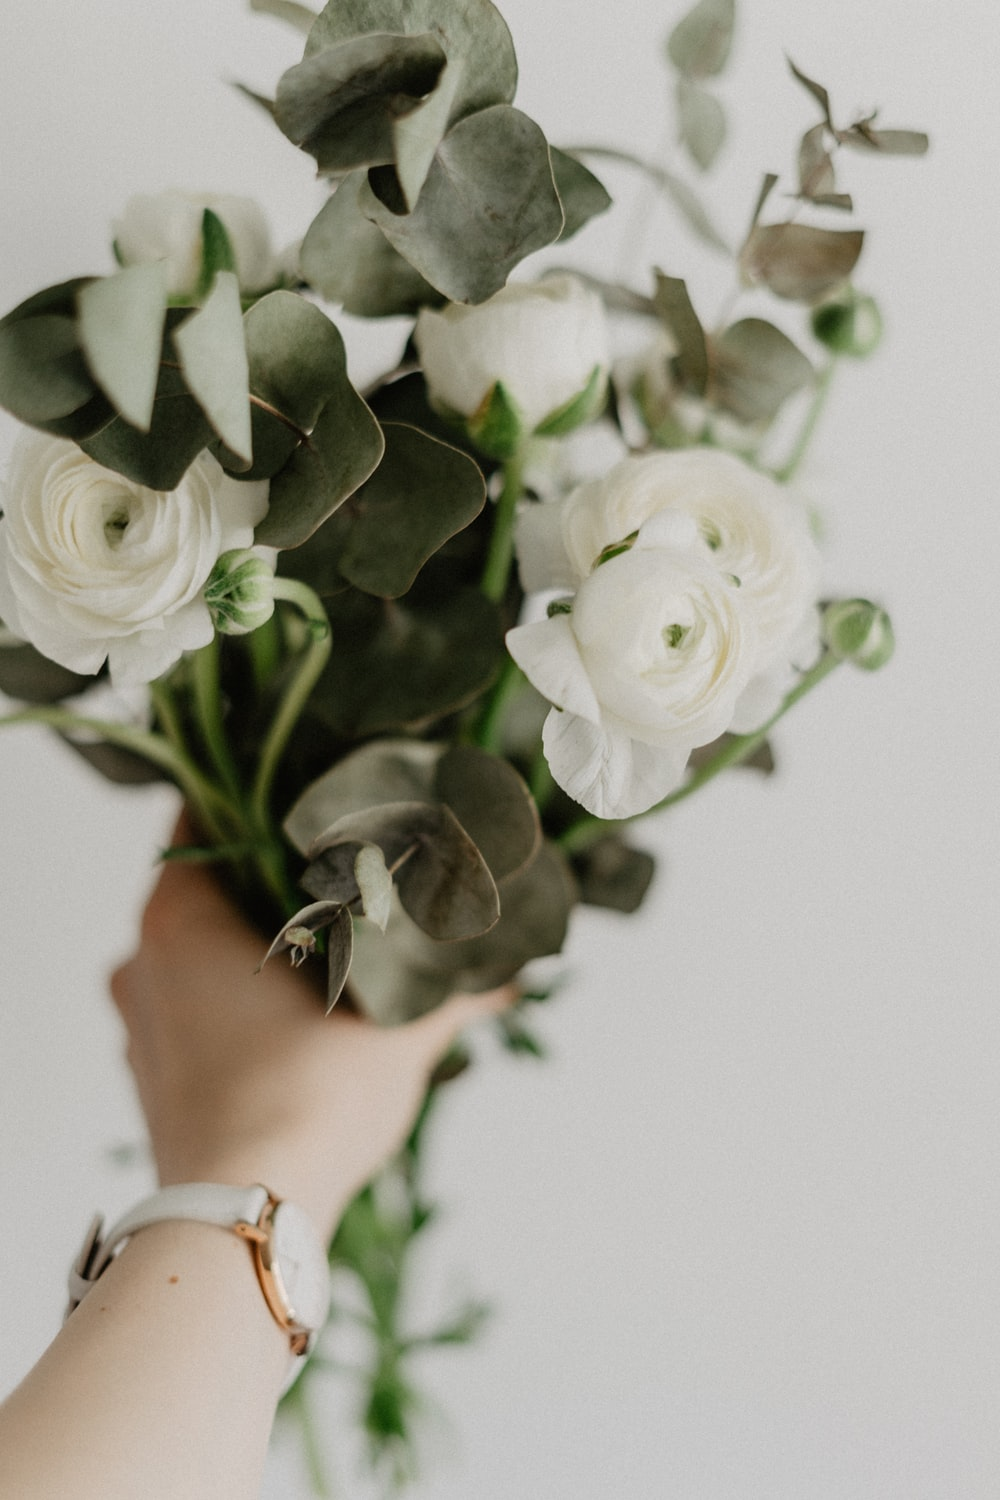 person holding white rose with green leaves